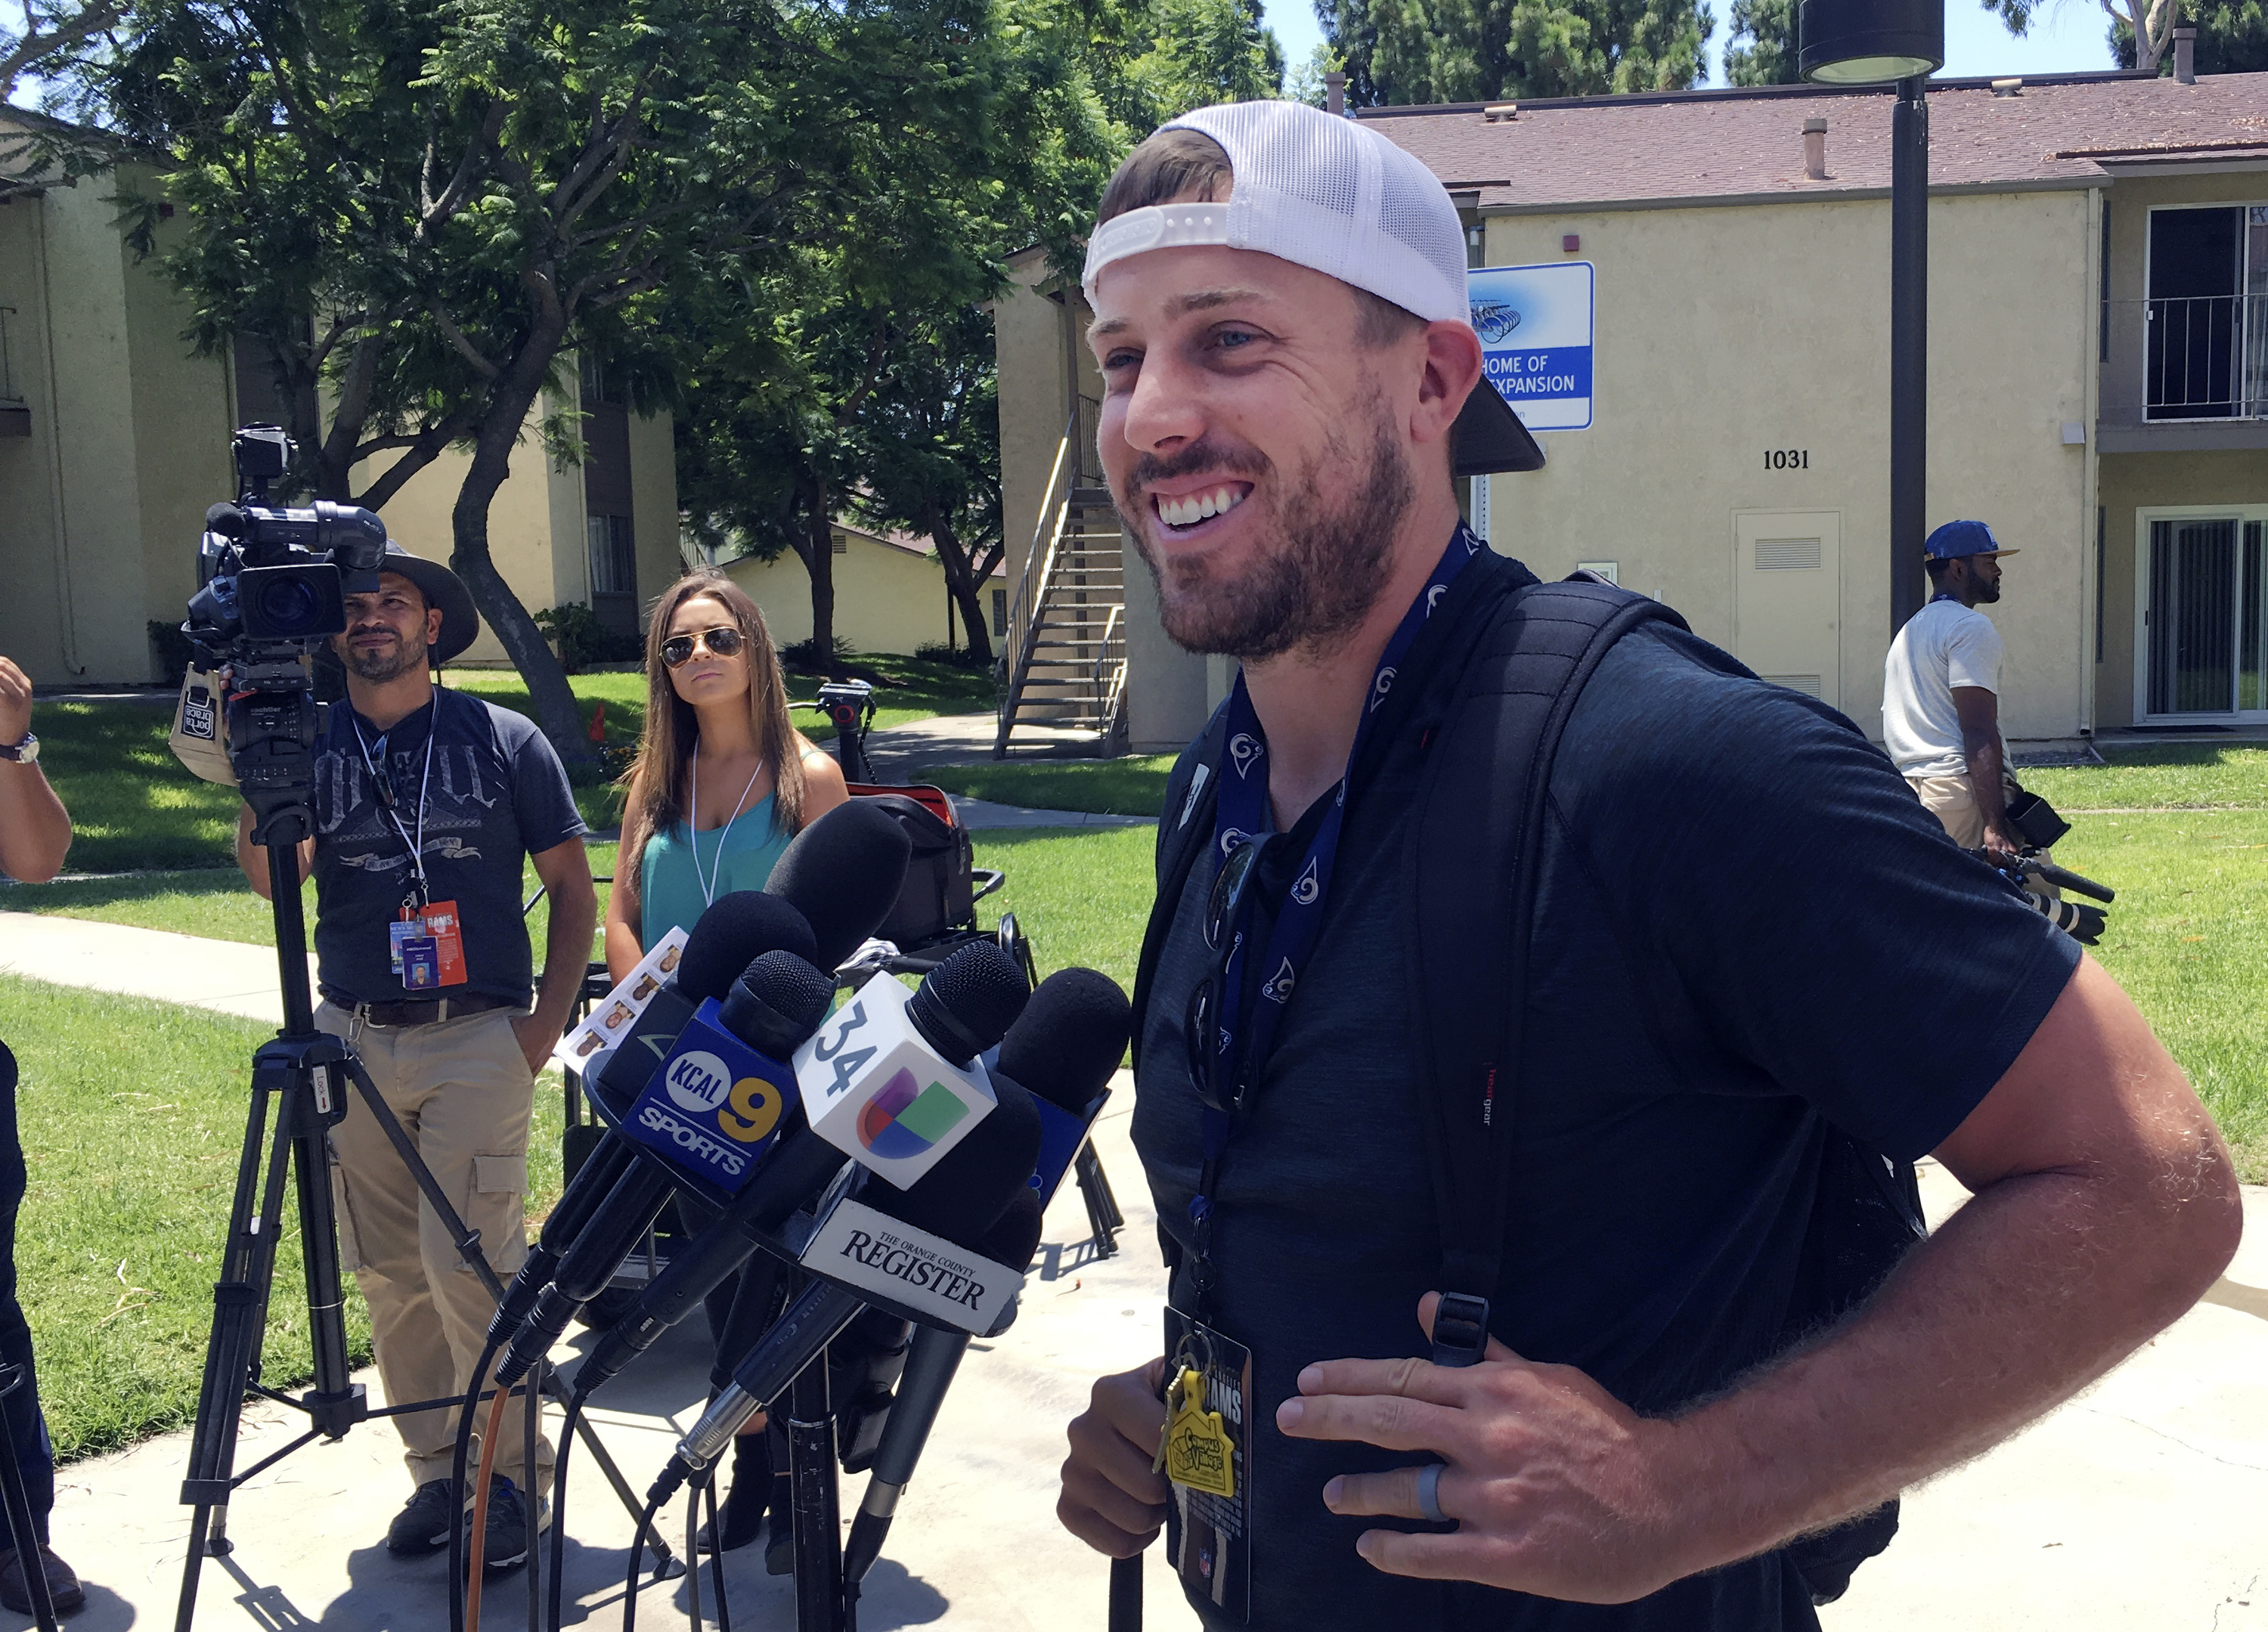 Rams quarterback Case Keenum talks to the media after reporting to training camp in Irvine, Calif. on Thursday, July 28,2016. The Los Angeles Rams' veterans gathered in Orange County for the start of a five-week residency at UC Irvine while their permanen